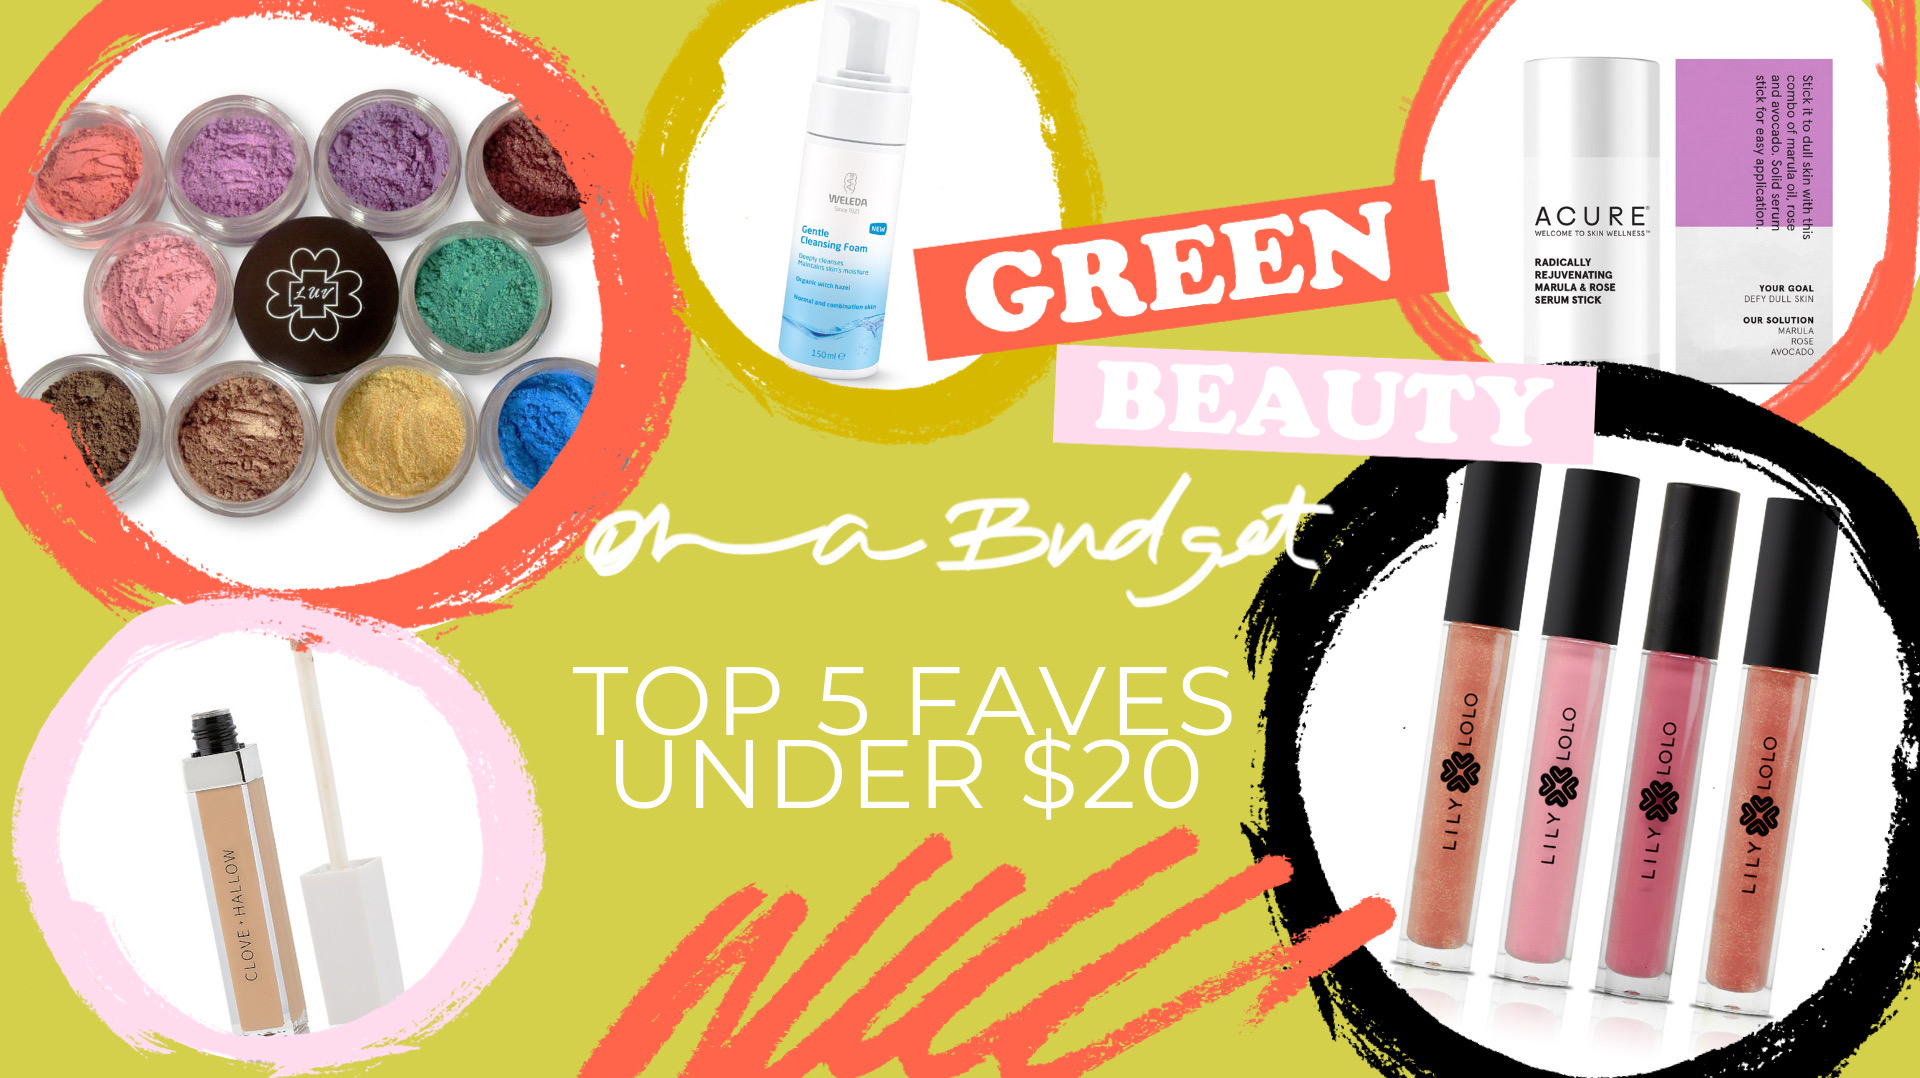 Green Beauty on a Budget, Top 5 Faves Under $20